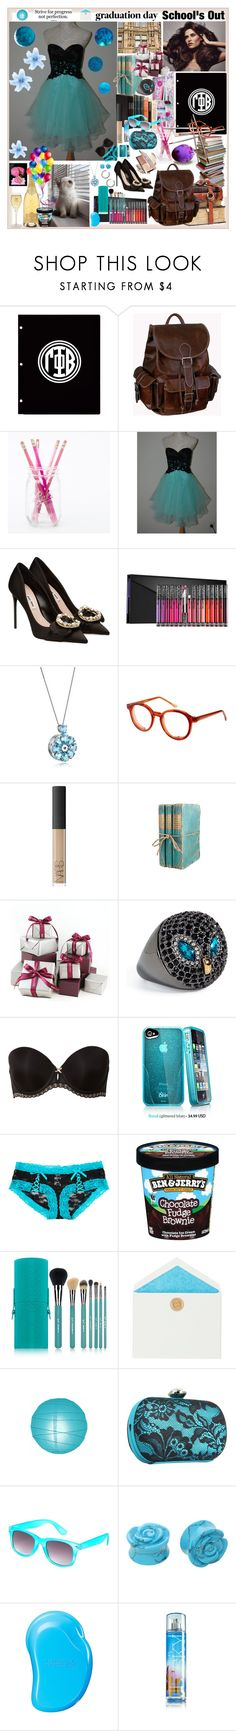 """graduation day"" by angelihenkle ❤ liked on Polyvore featuring AmeriLeather, Miu Miu, Kat Von D, Chanel, Spitfire, NARS Cosmetics, Alex Monroe, Juicy Couture, b.tempt'd by Wacoal and Sigma"